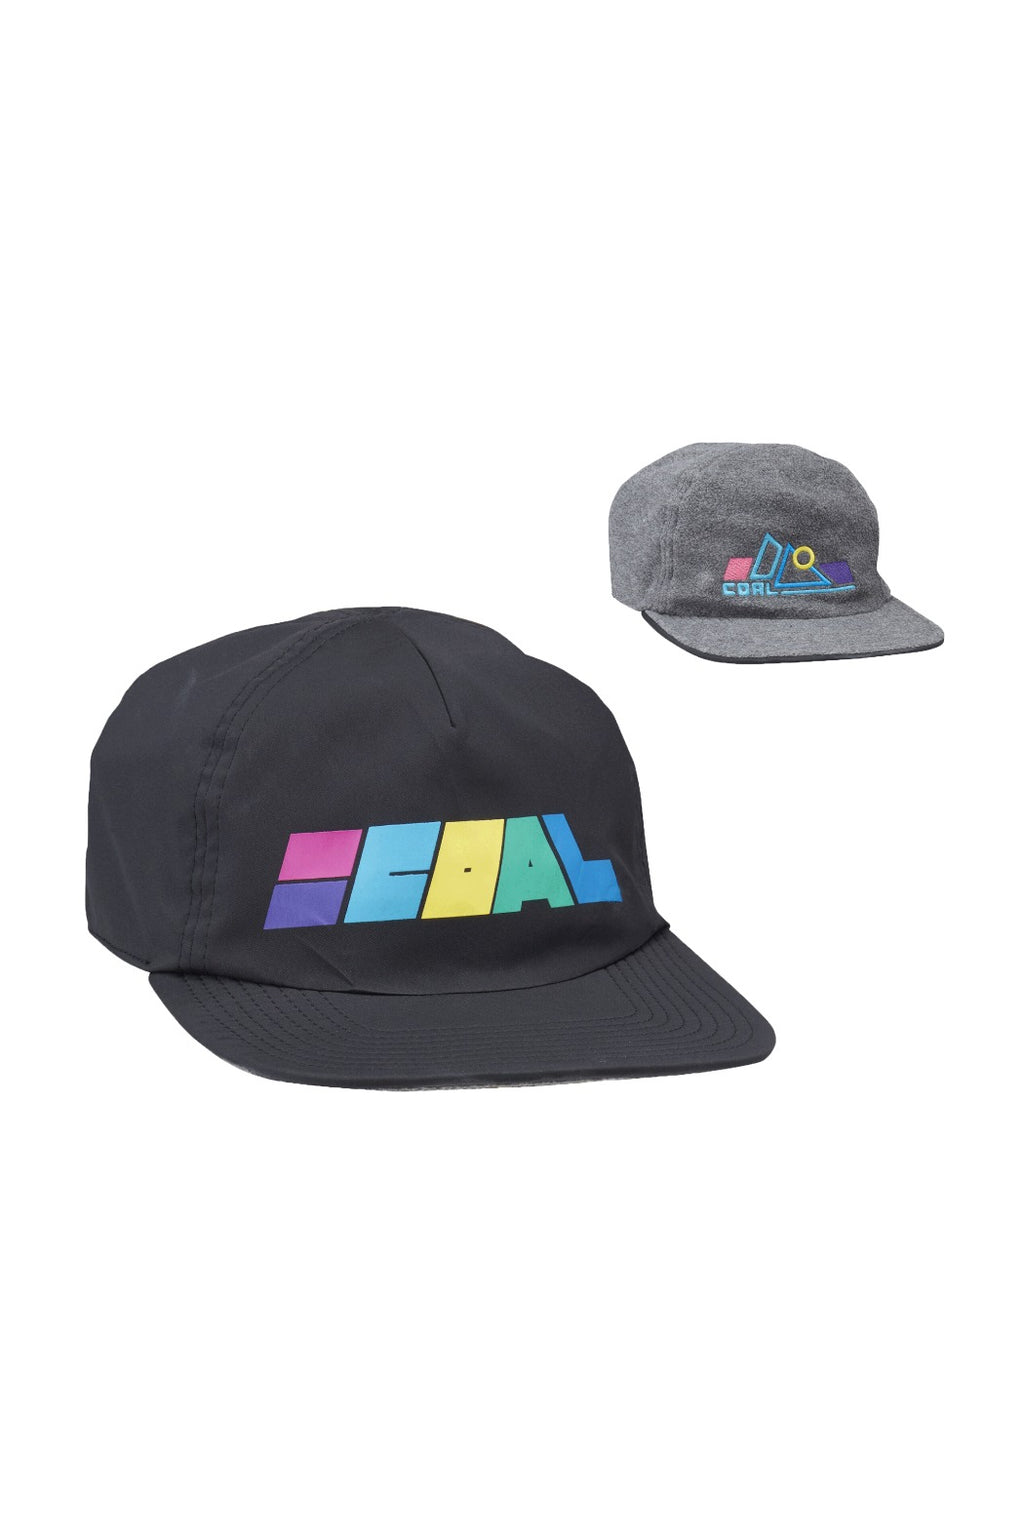 Coal The Treeline Cap - Black